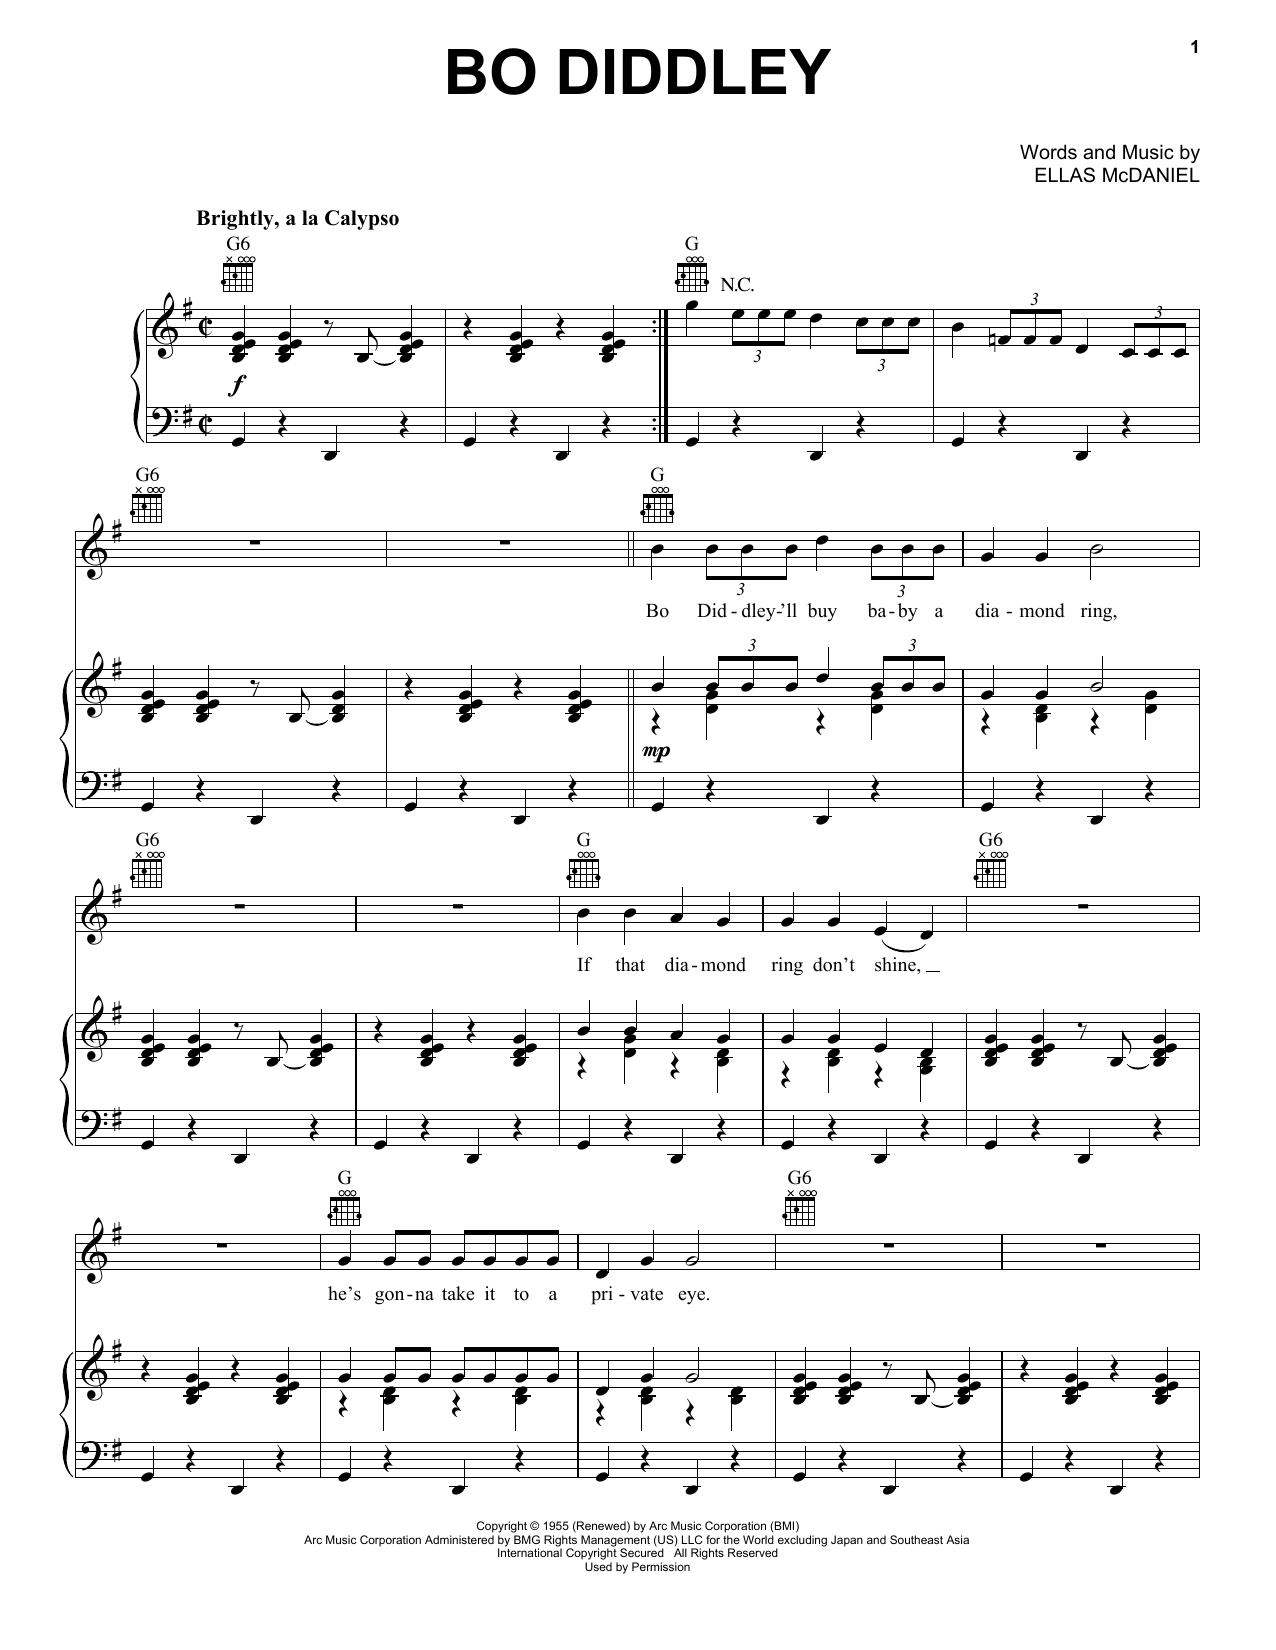 Bo Diddley Bo Diddley sheet music notes and chords. Download Printable PDF.